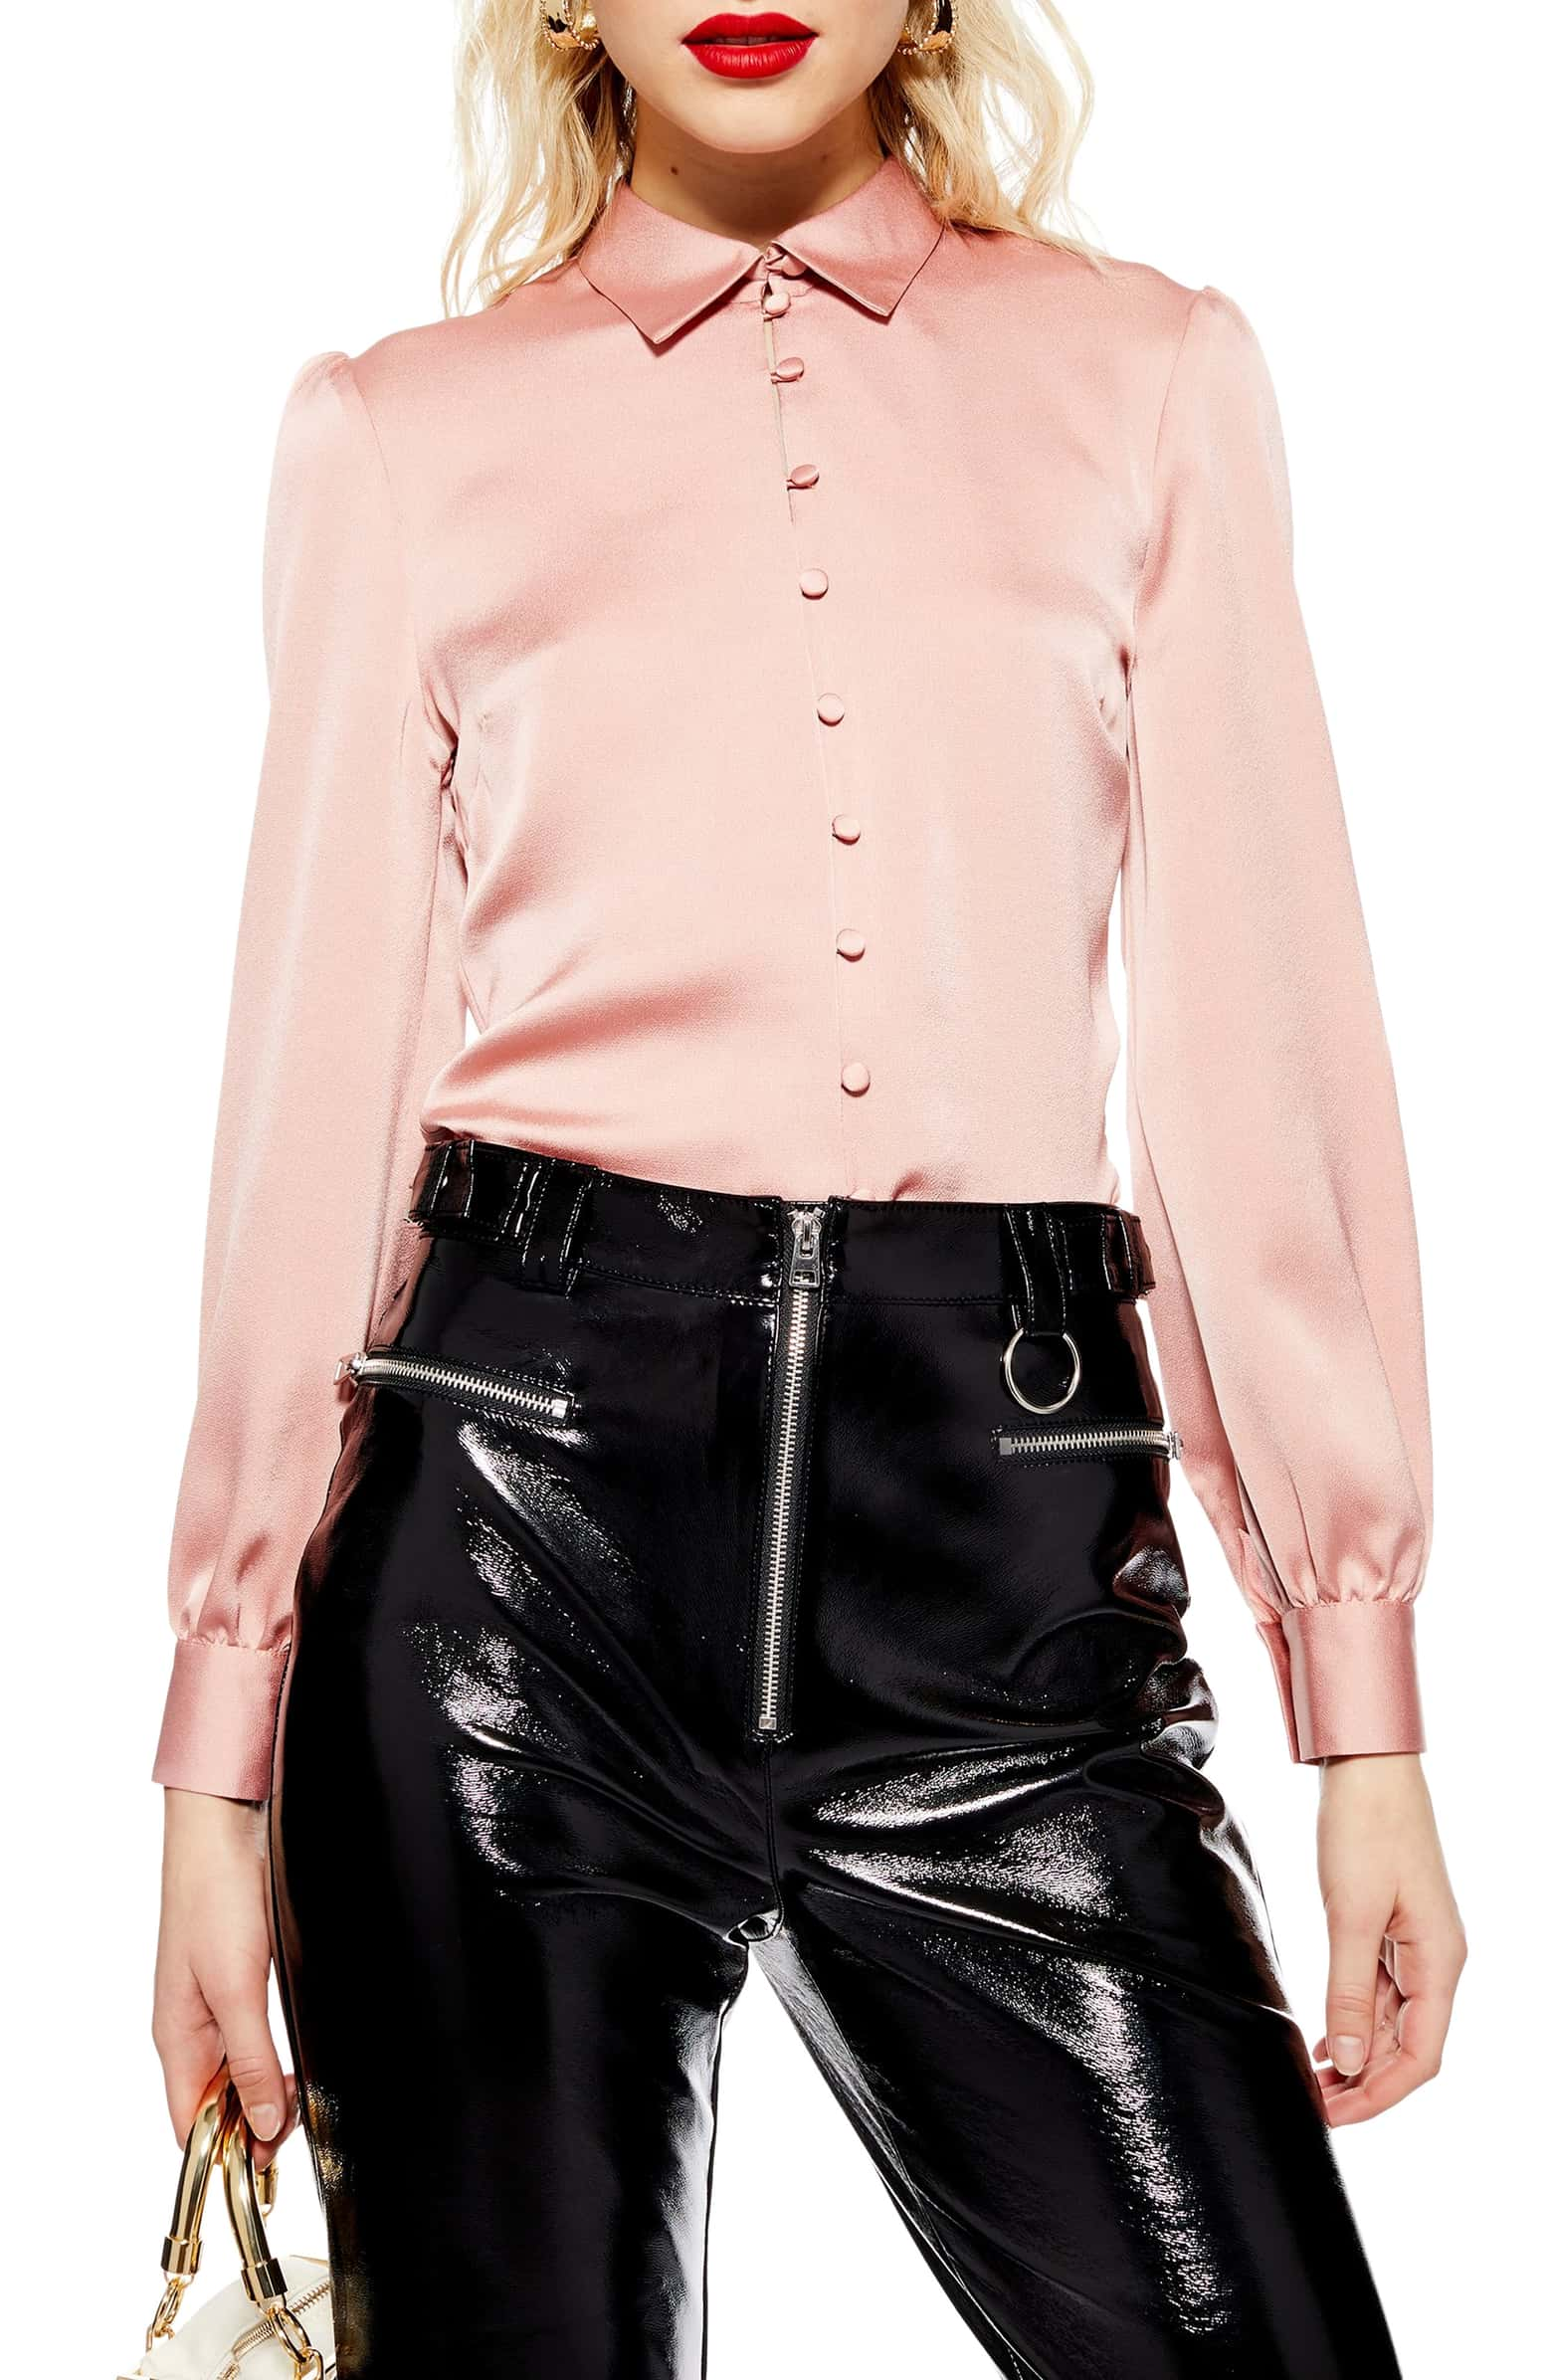 topshop button up shirt.jpg